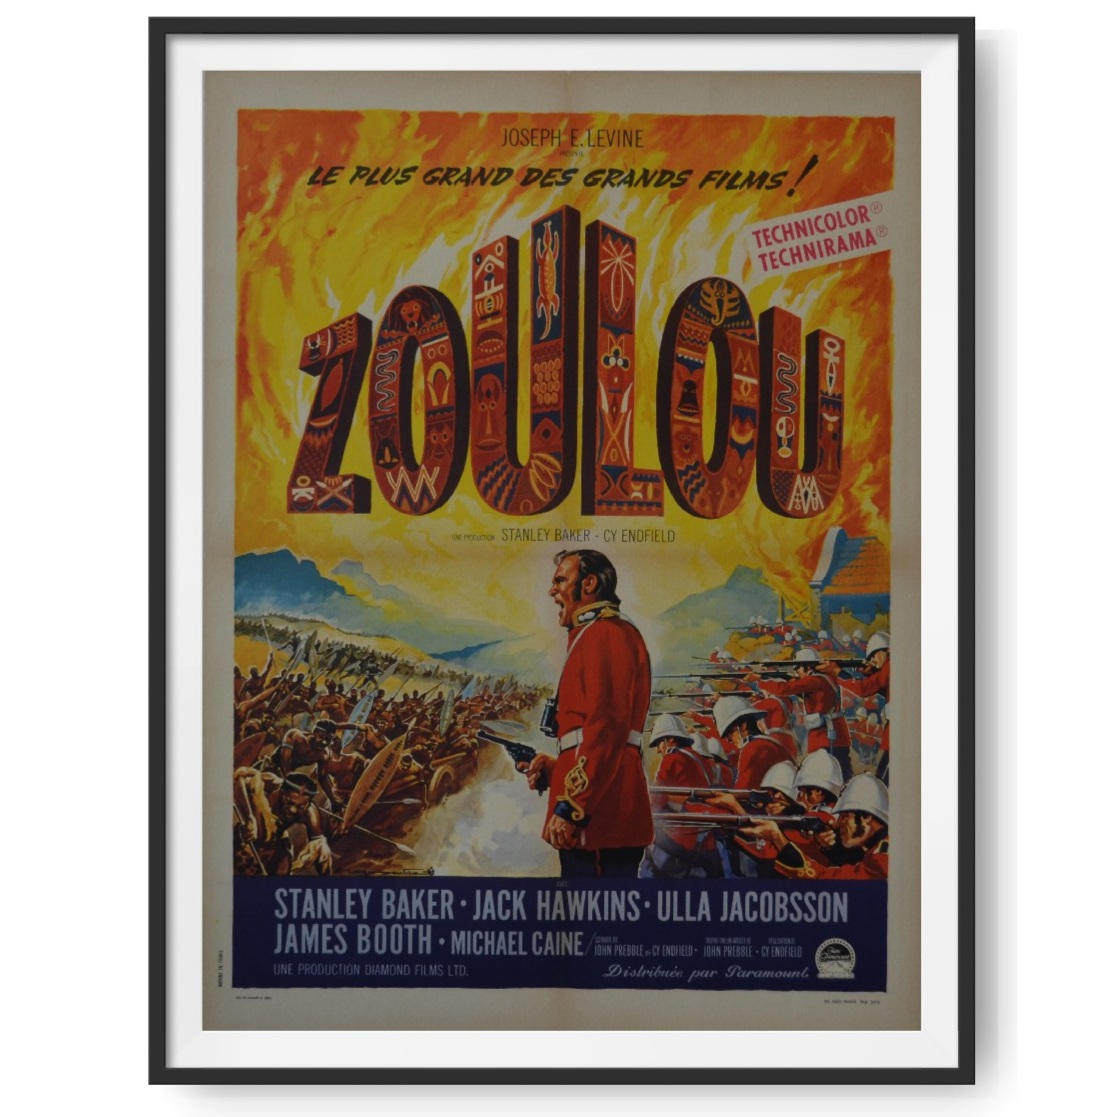 A poster for the 1964 film Zulu, starring Michael Caine.